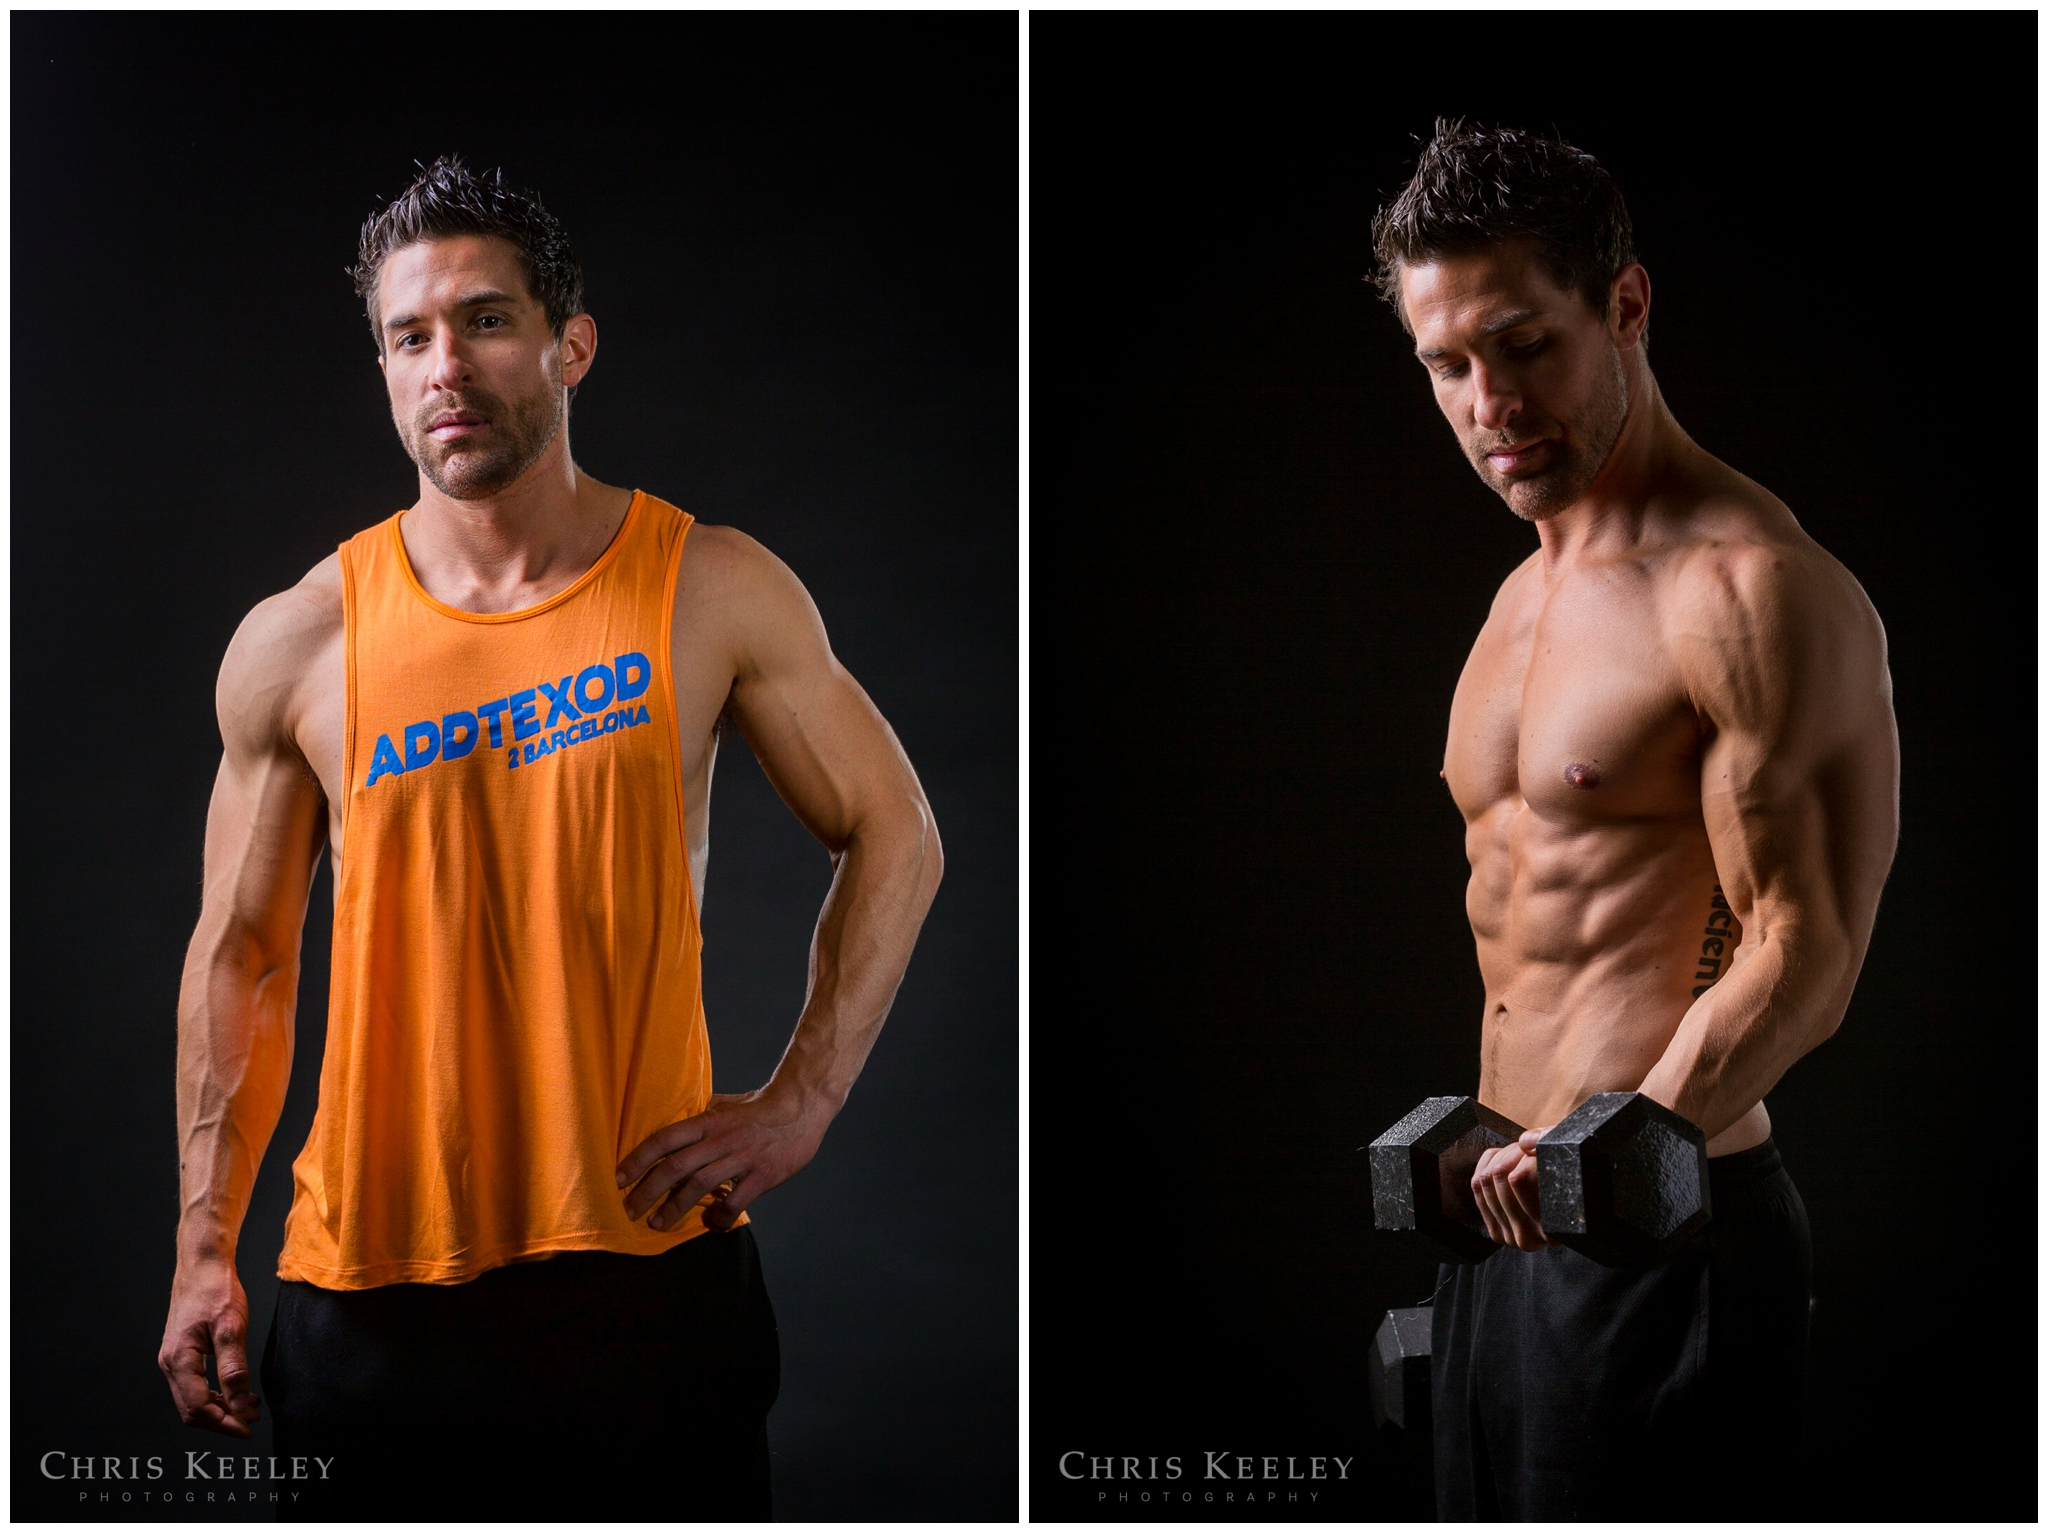 fitness-photos-personal-trainer-maine-new-hampshire-chris-keeley-photography-07.jpg